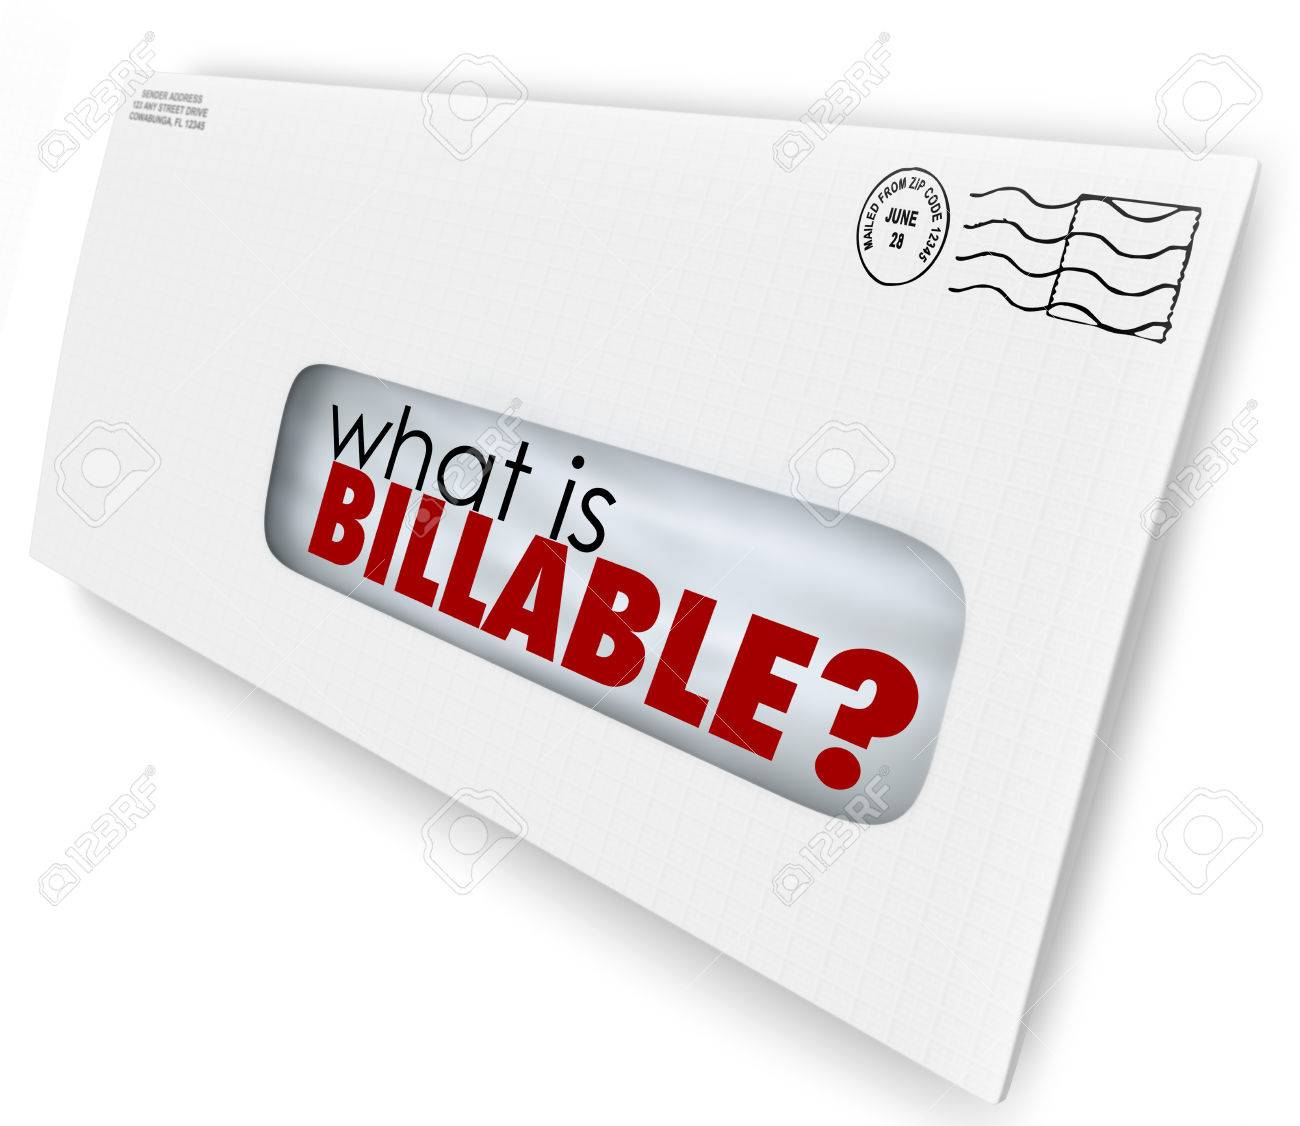 what is billable words in an envelope for a bill or invoice for stock photo what is billable words in an envelope for a bill or invoice for services rendered or products sent